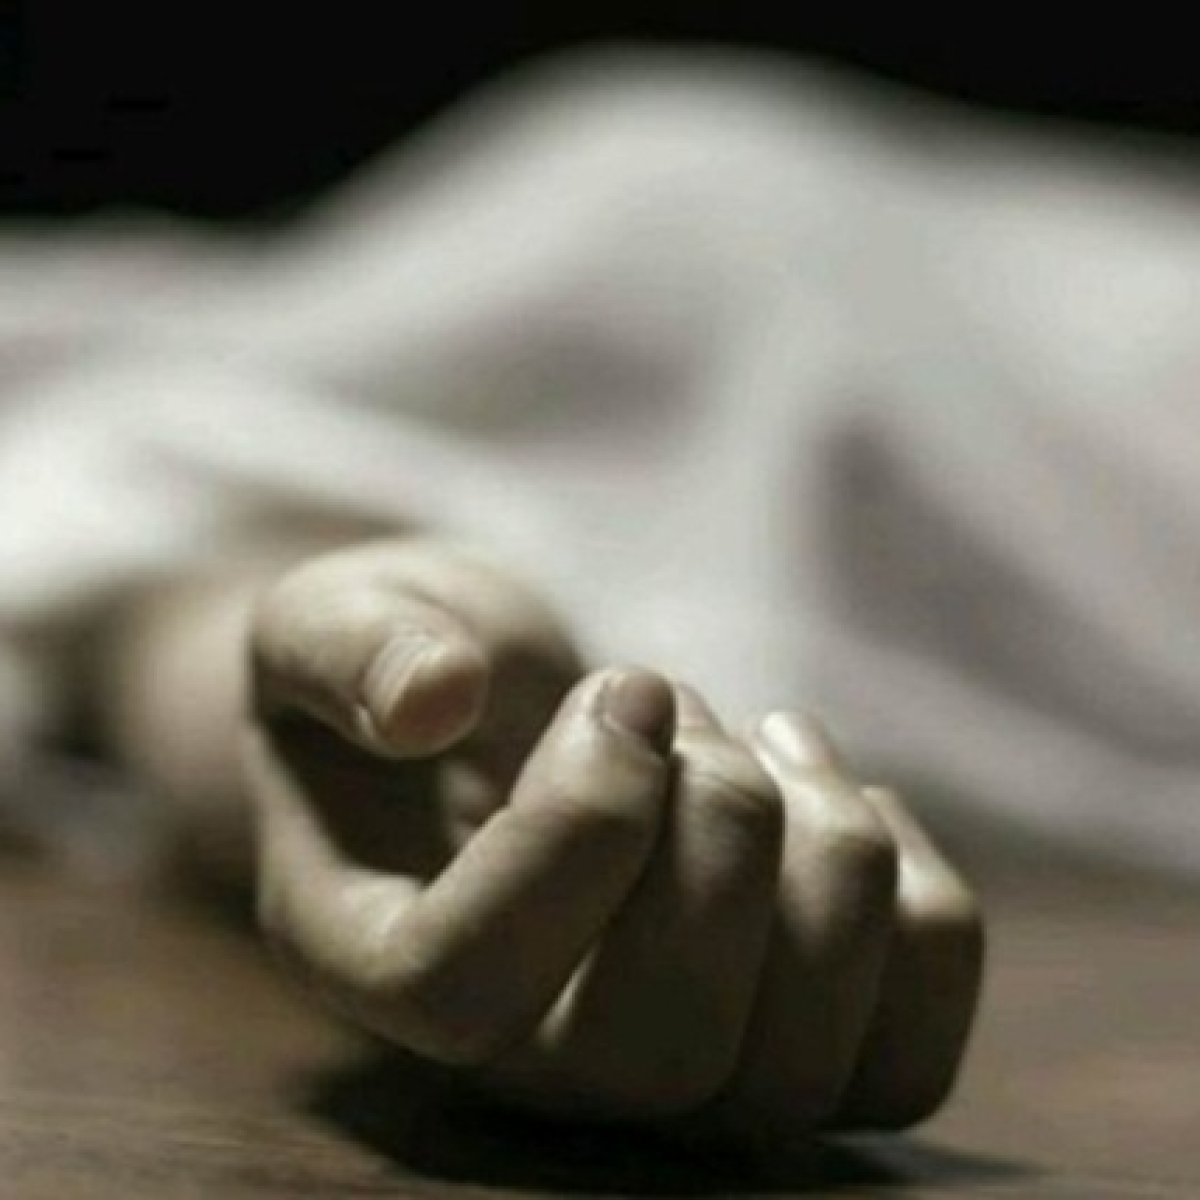 Youth Stabs Girlfriend to Death, Attempts Suicide